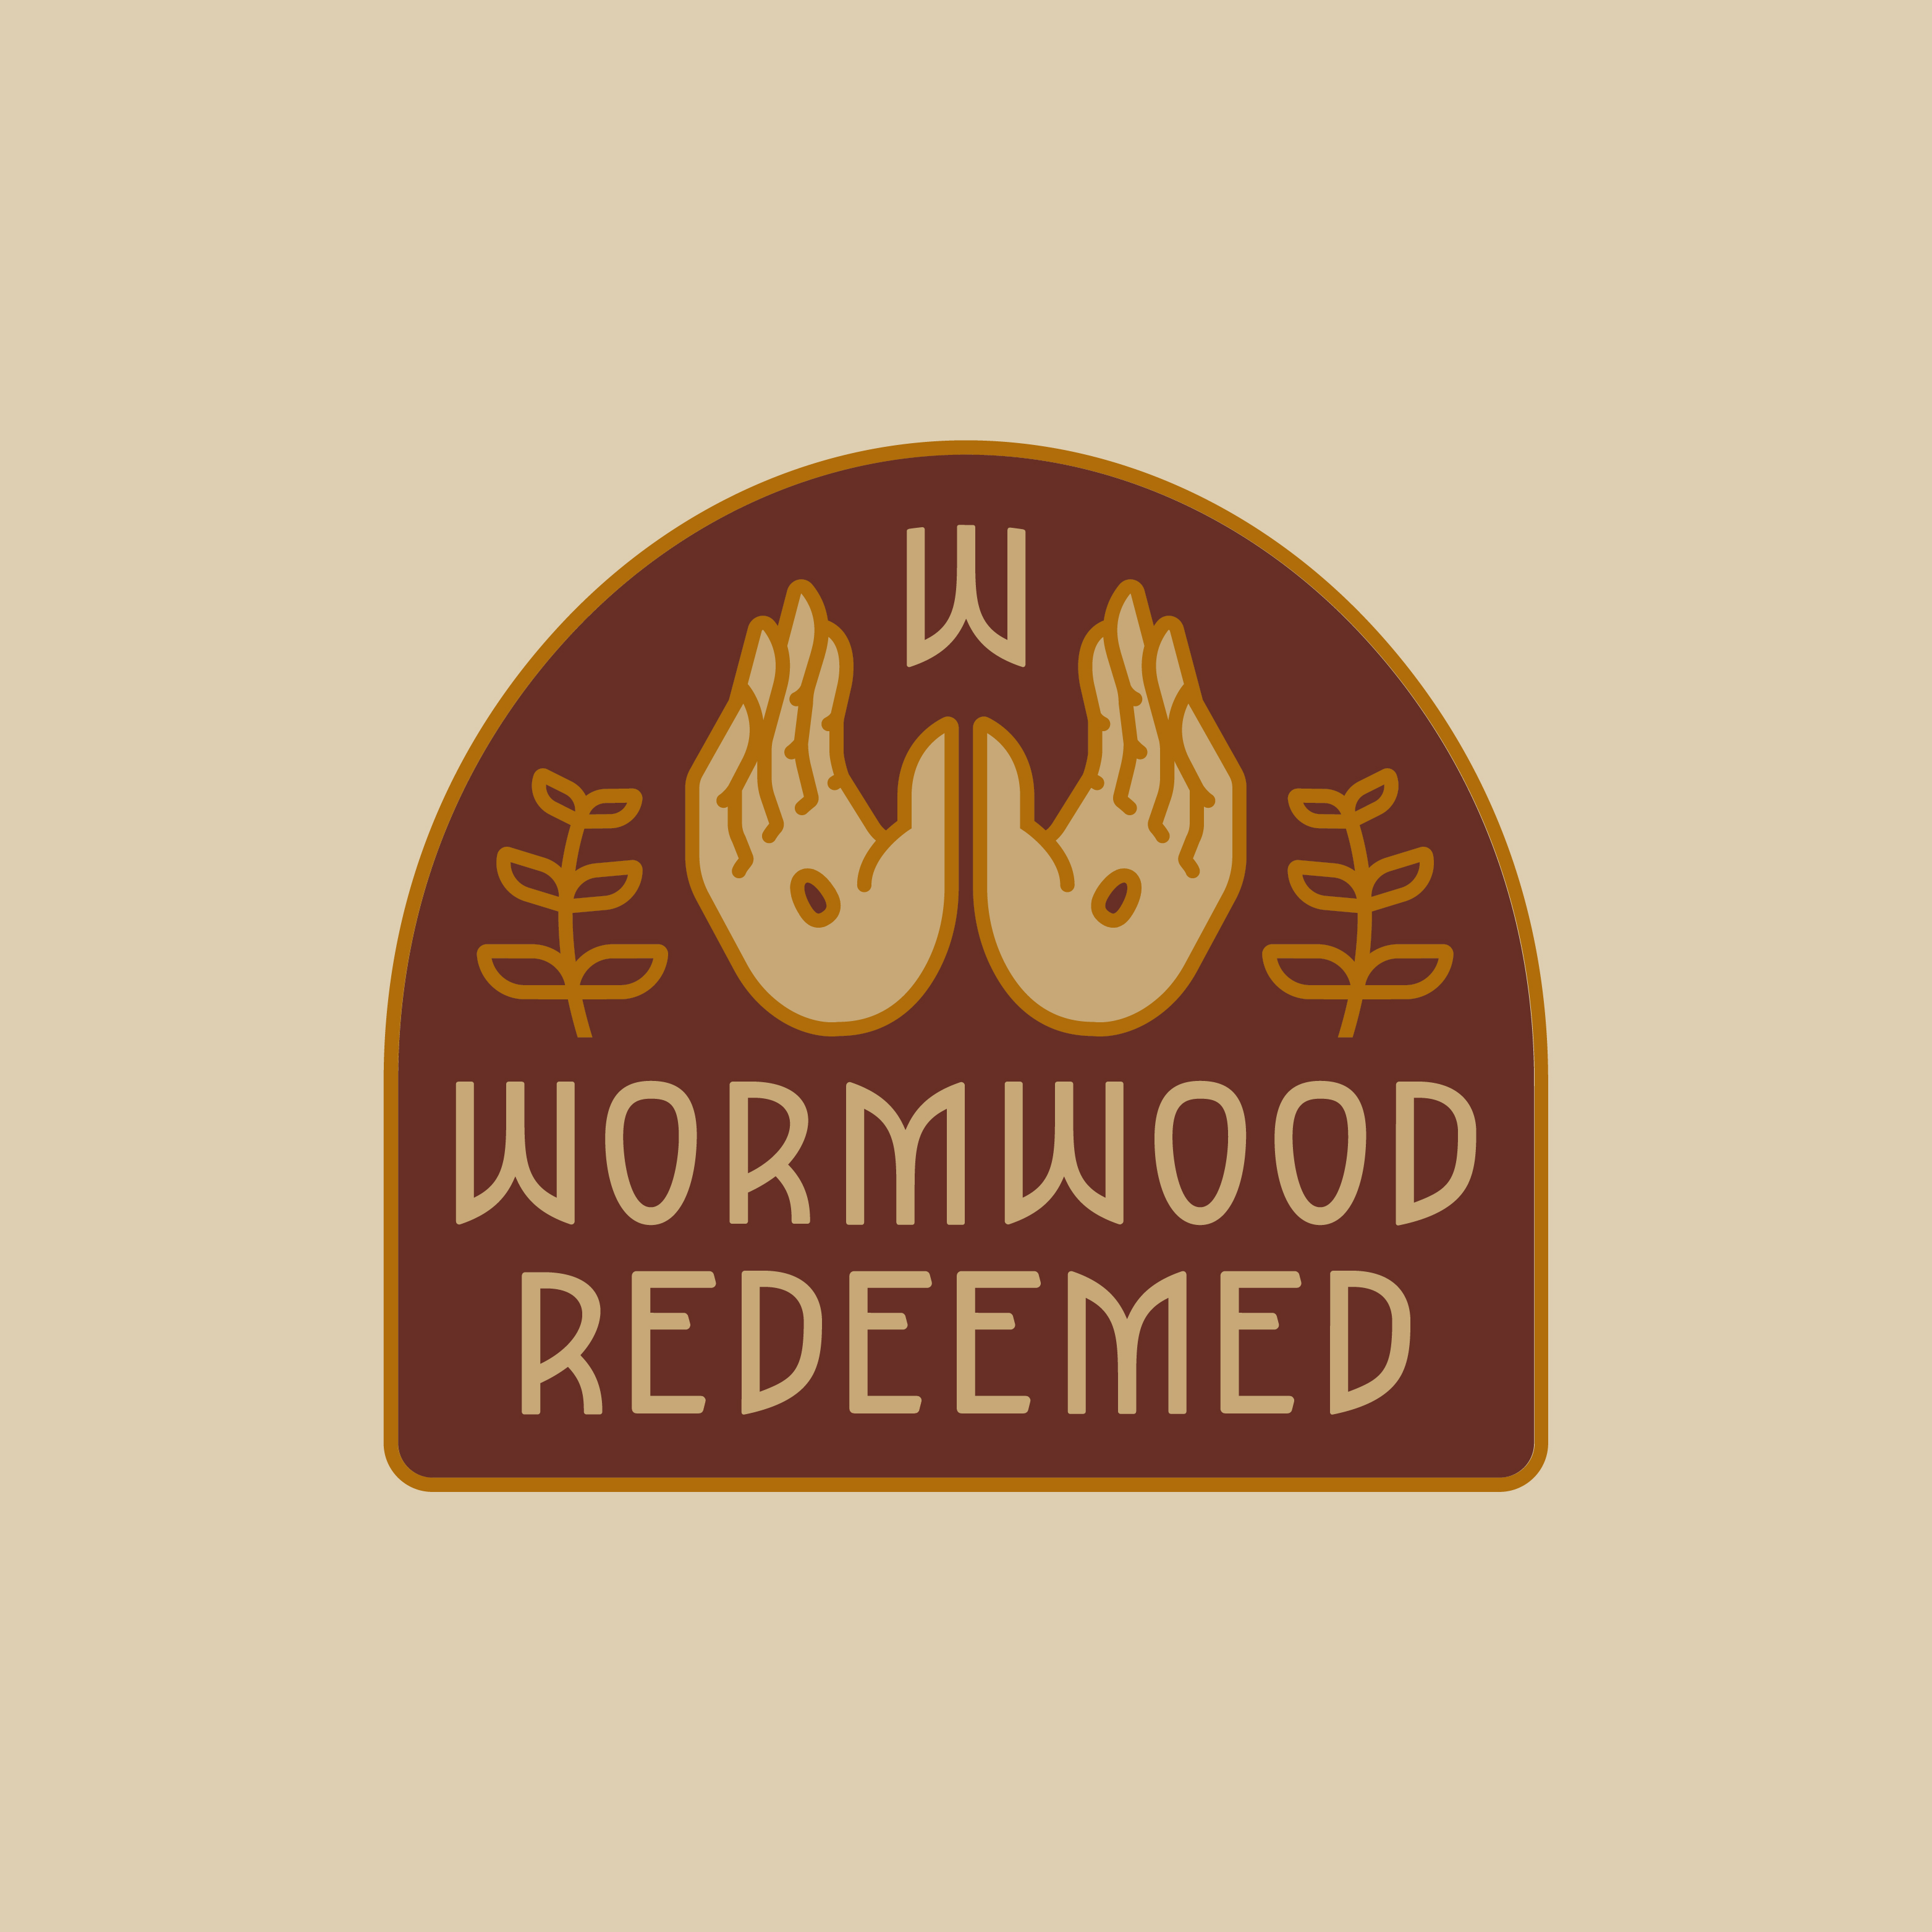 Wormwood Redeemed logo design by Hunter Oden of oden.house